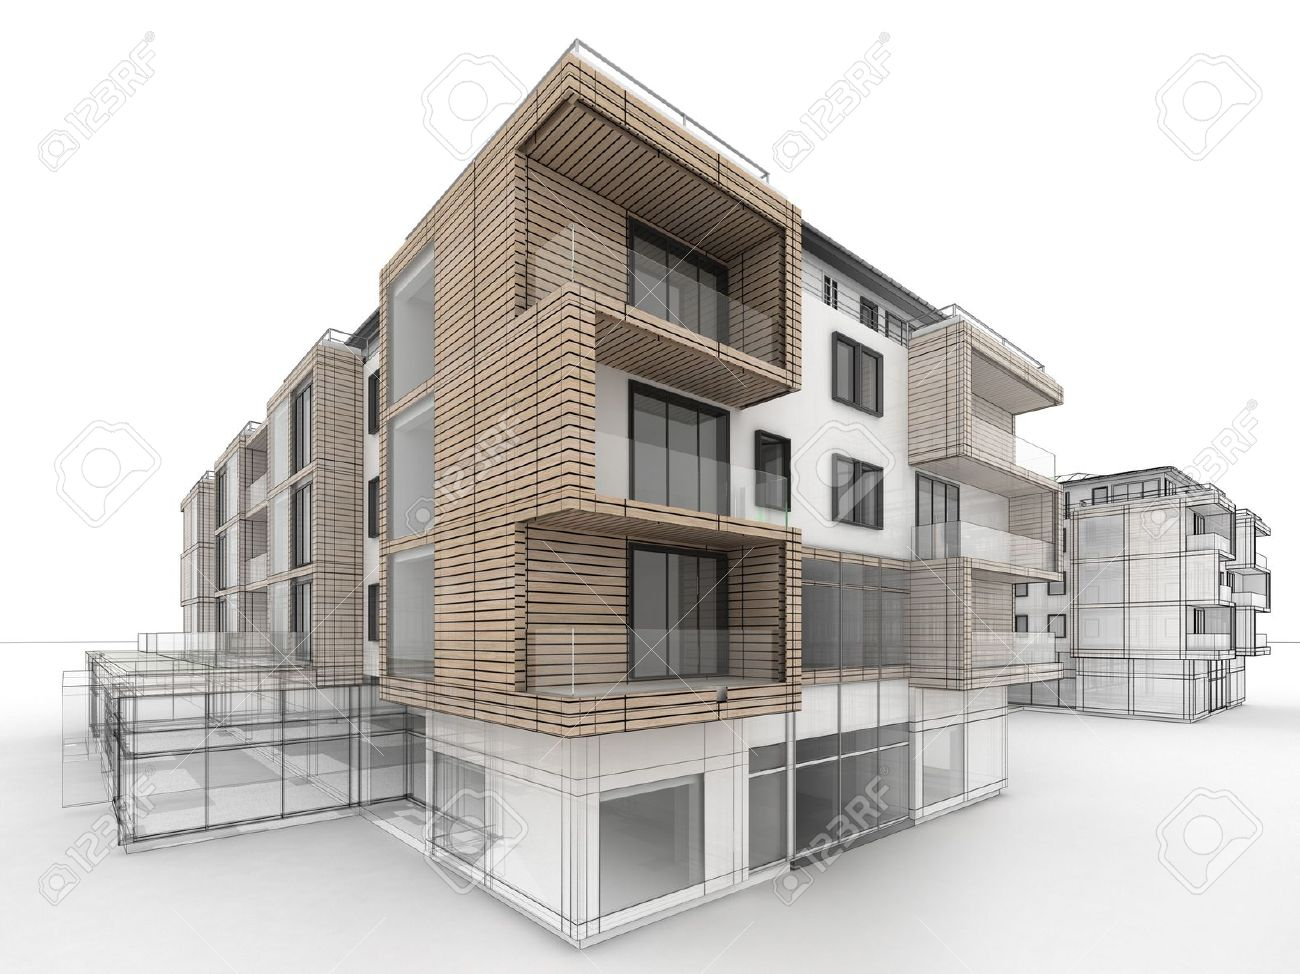 apartment building design progress, architecture visualization..